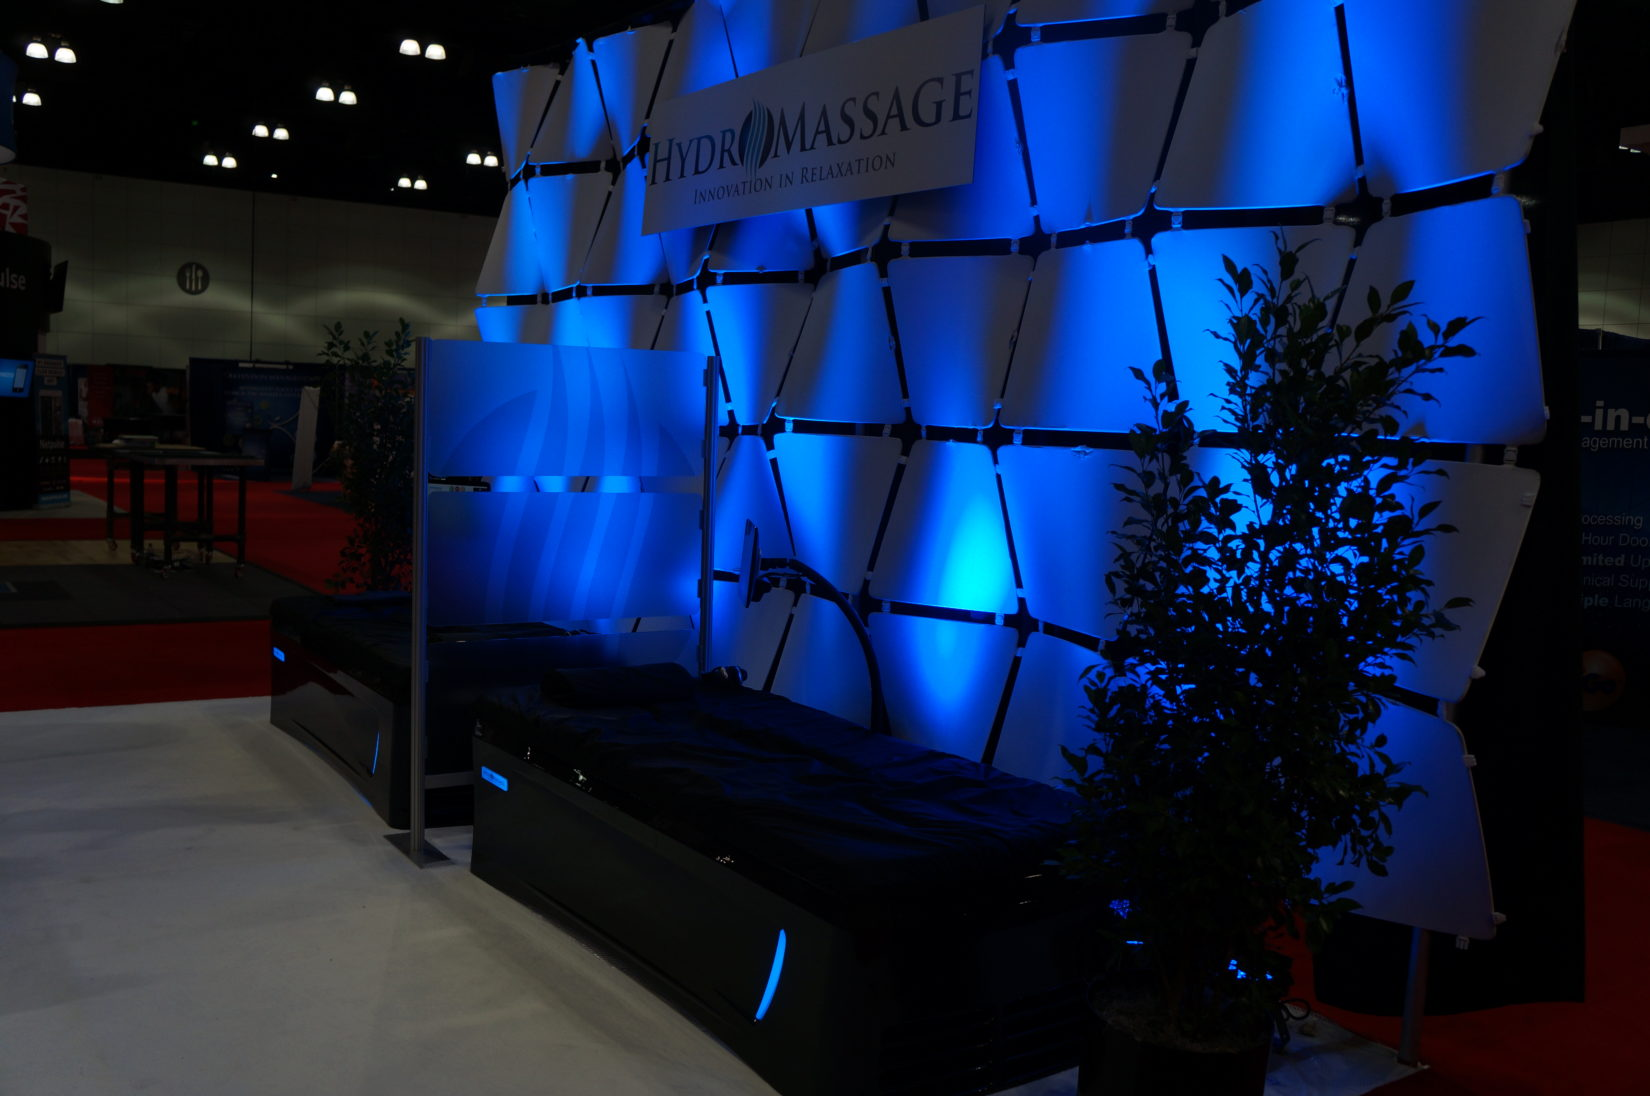 HydroMassage showroom booth